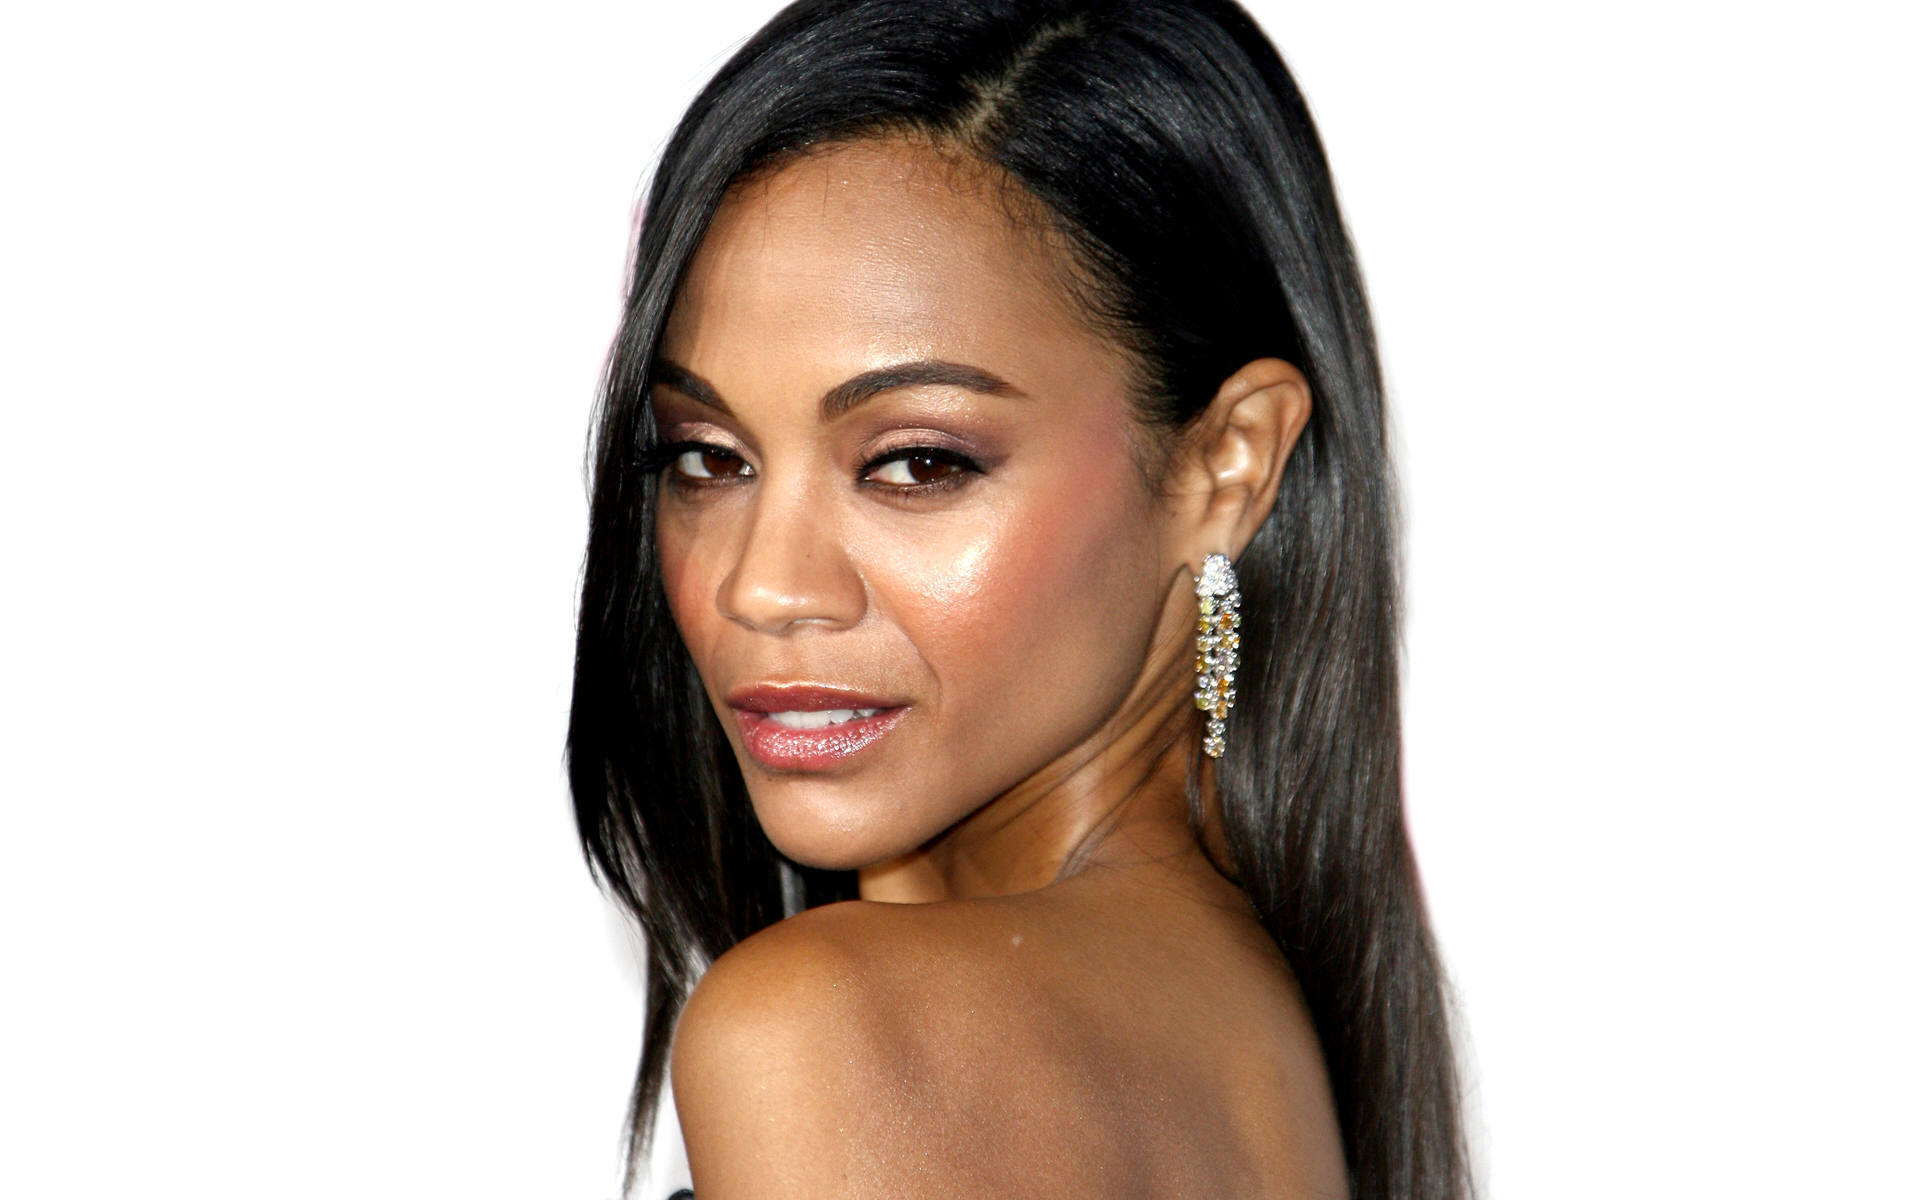 zoe saldana marco peregozoe saldana gif, zoe saldana avatar, zoe saldana 2016, zoe saldana vk, zoe saldana gif hunt, zoe saldana style, zoe saldana фильмы, zoe saldana marco perego, zoe saldana фото, zoe saldana wiki, zoe saldana star trek, zoe saldana movies, zoe saldana hot photo, zoe saldana sisters, zoe saldana legend, zoe saldana кинопоиск, zoe saldana 2017, zoe saldana png, zoe saldana wikipedia, zoe saldana twitter